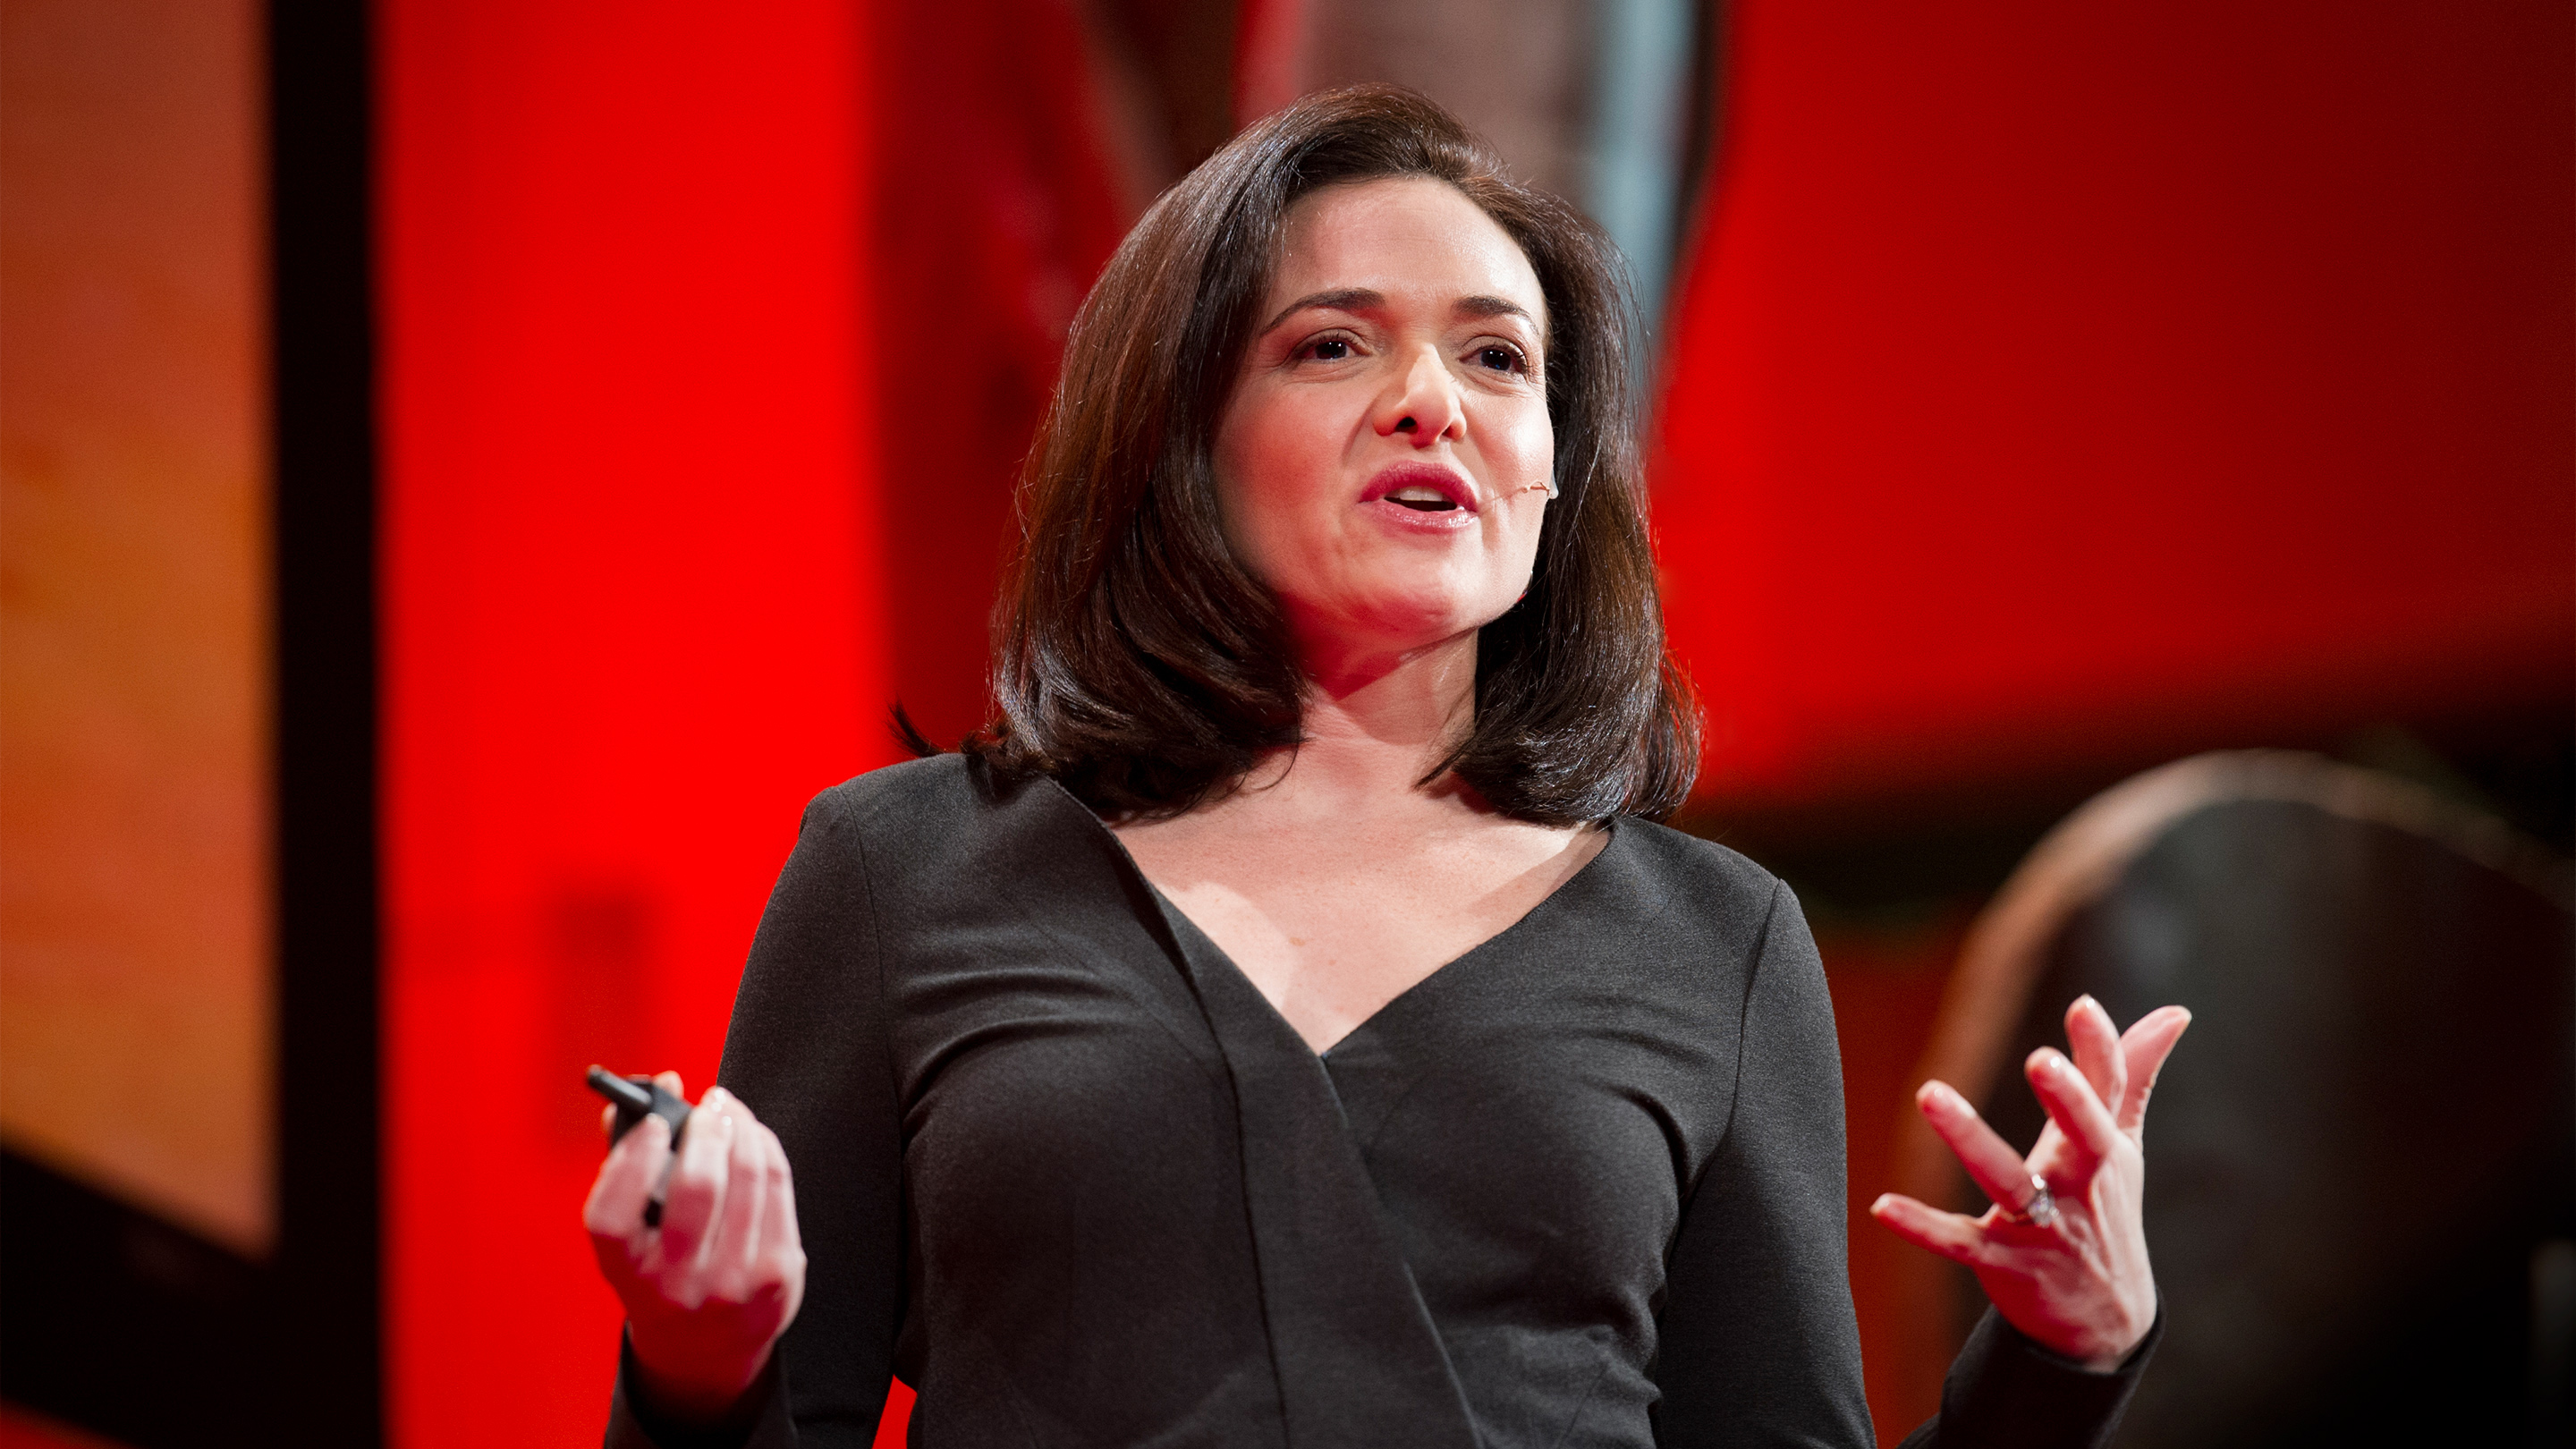 Sheryl Sandberg speaking at TEDWomen. Credit: James Duncan Davidson / TED